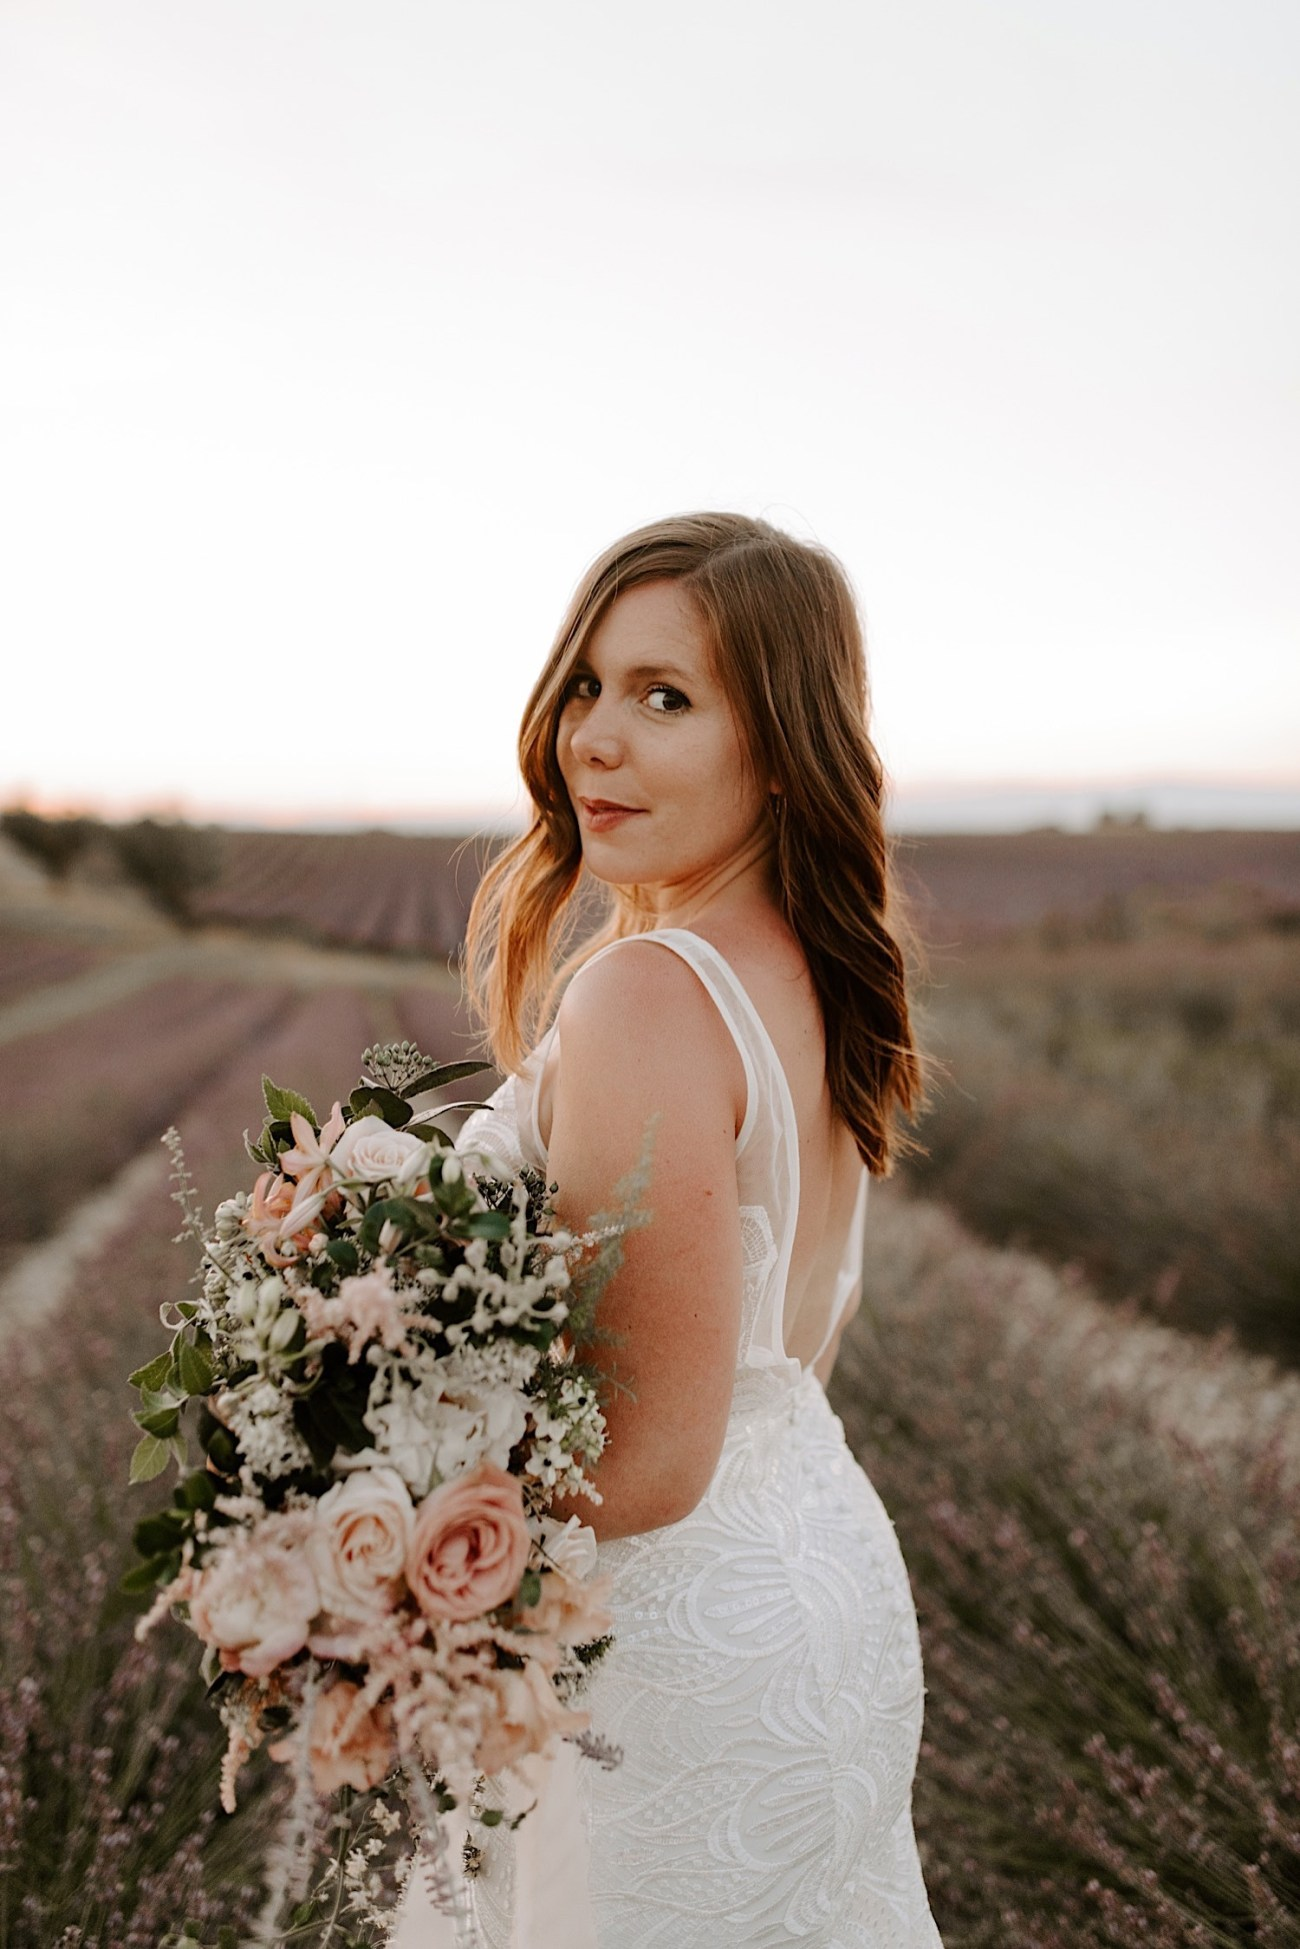 Valensole Wedding Photos Lavender Field Wedding Provence Wedding French Wedding Photographer Destination Wedding France Anais Possamai Photography 12